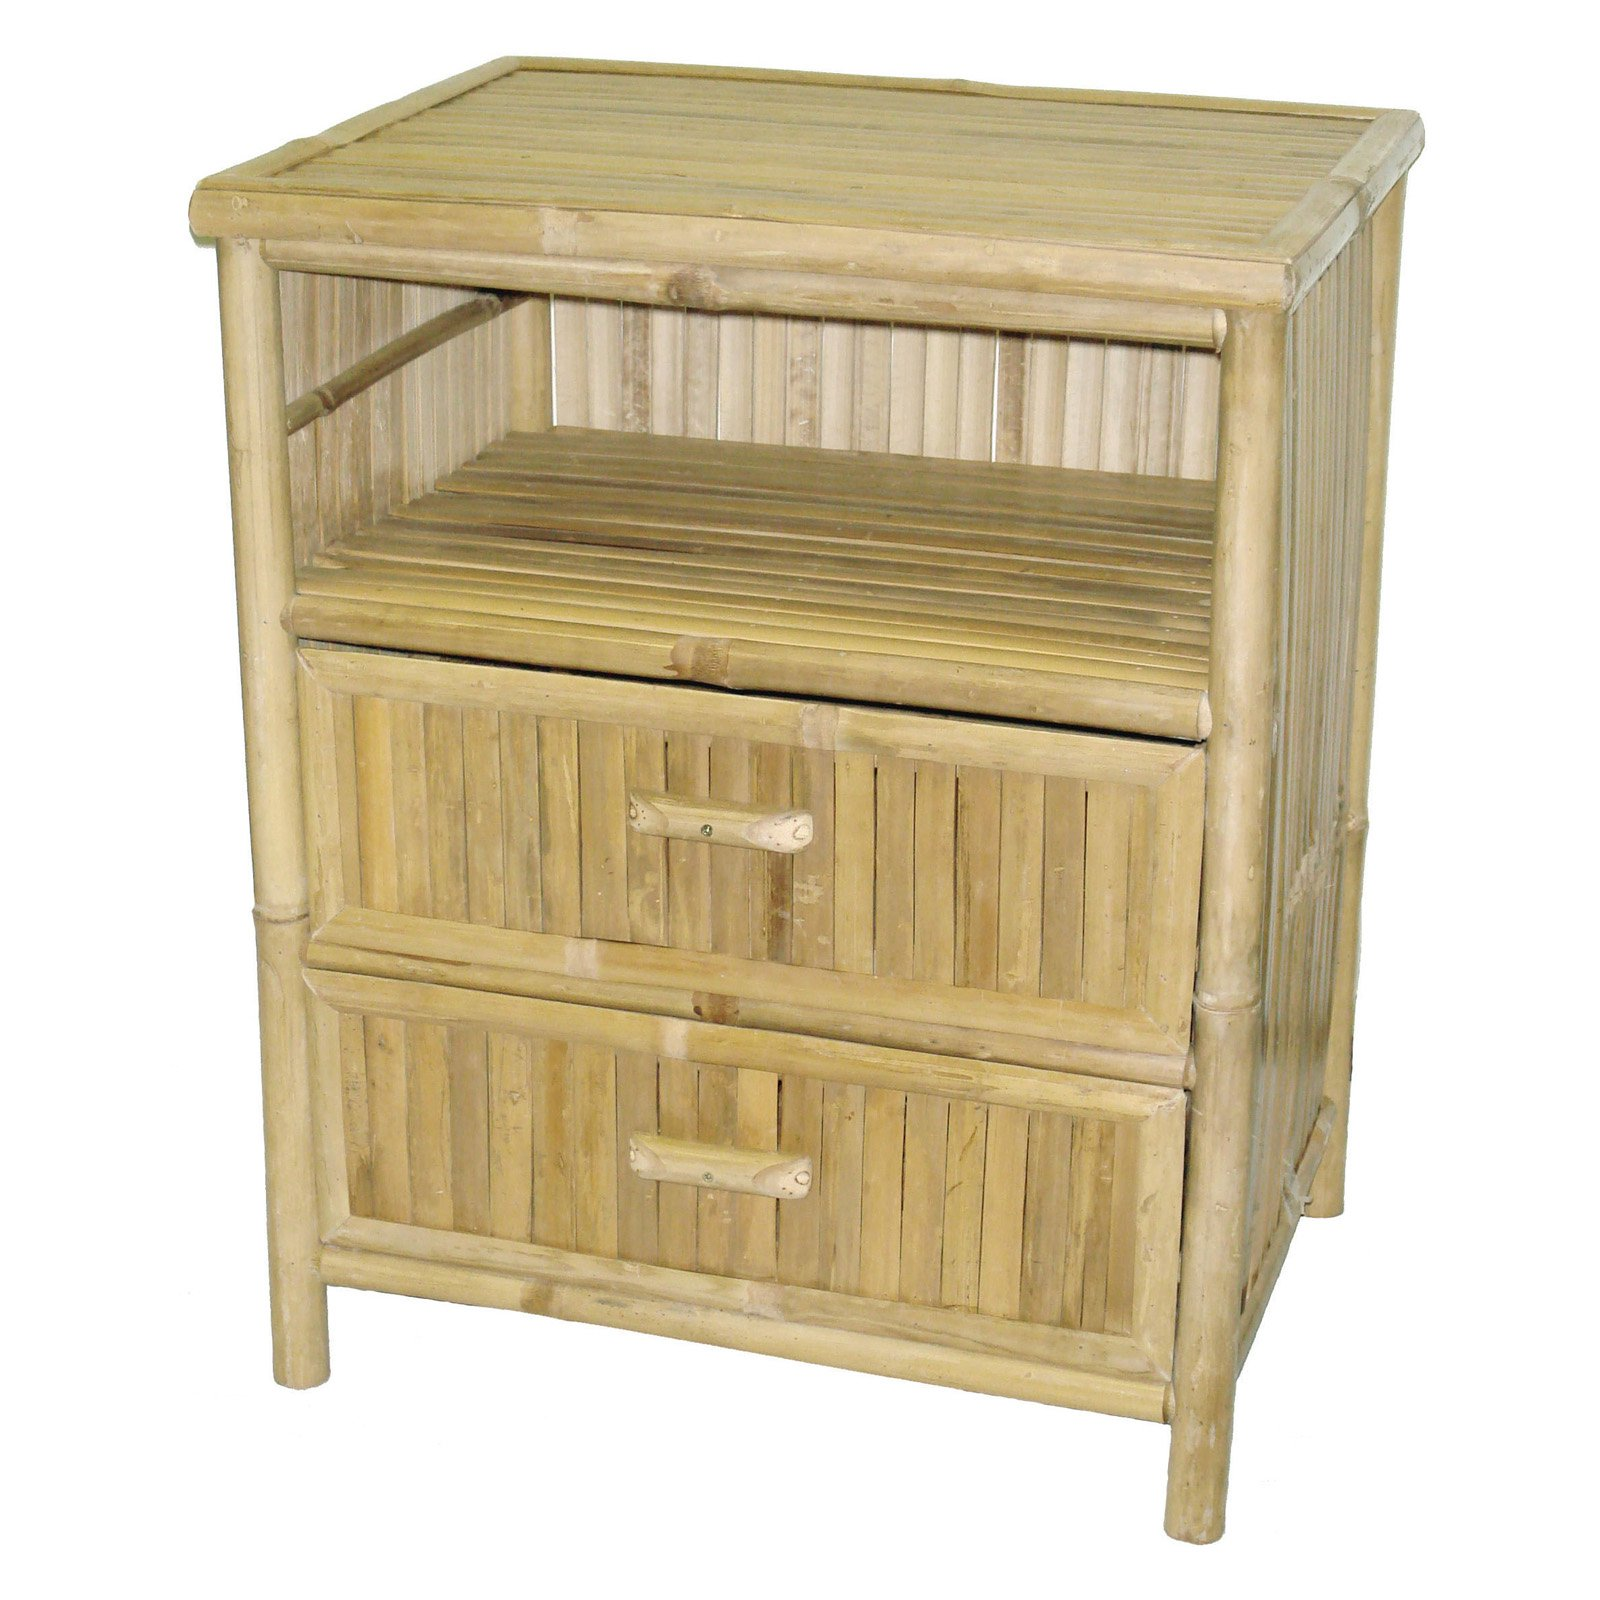 Bamboo54 Patio End Table with 2 Drawers